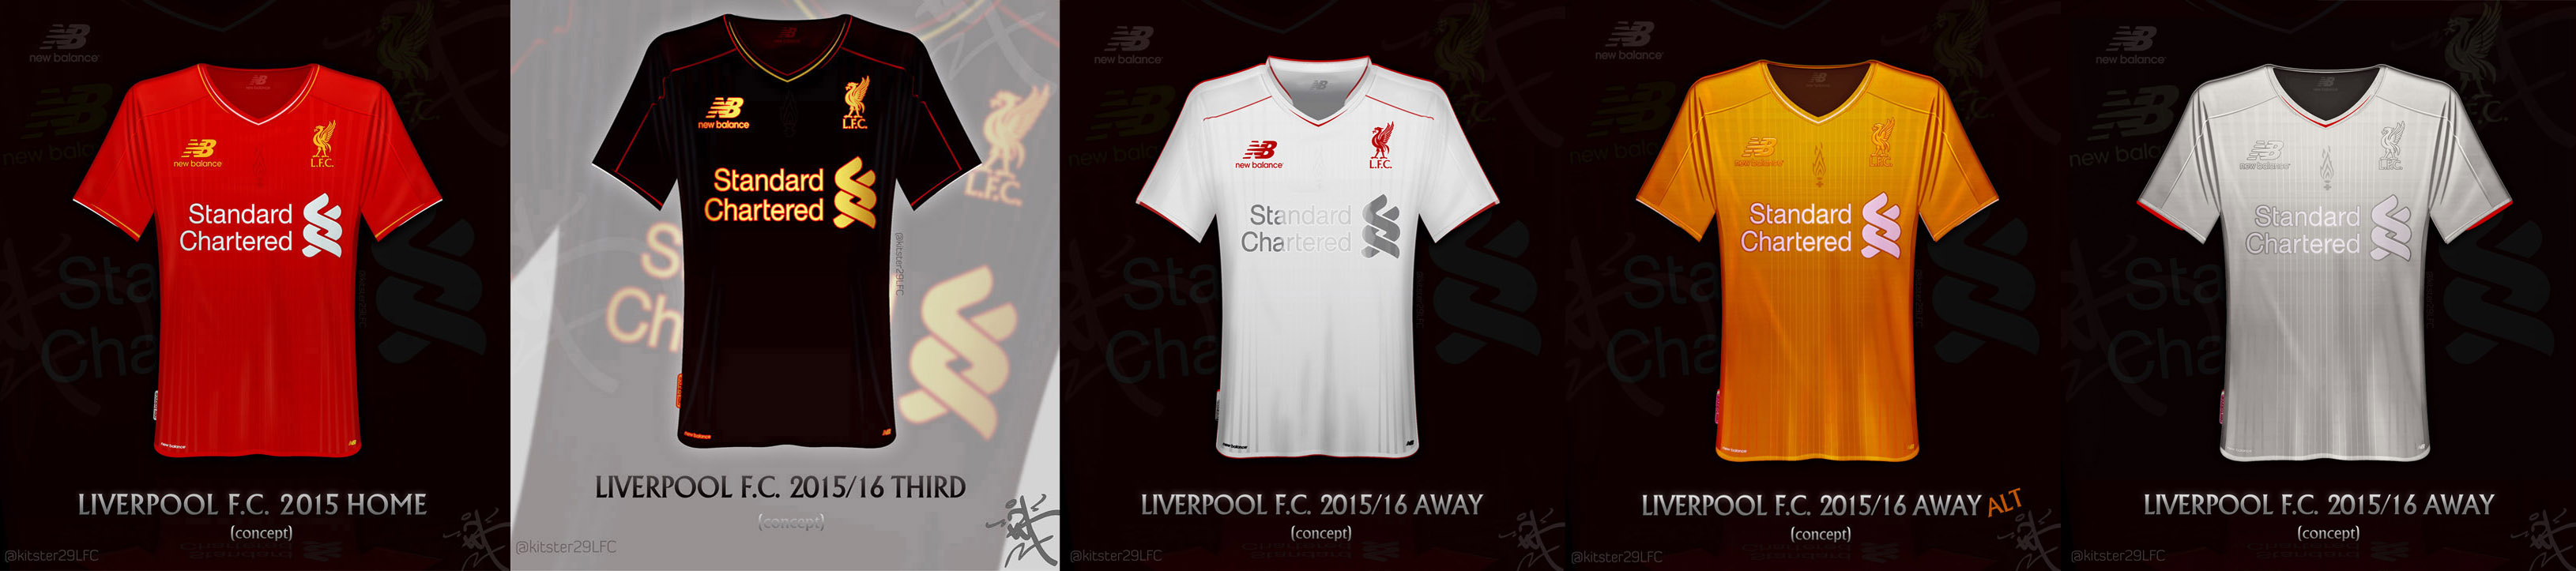 buy online 514ac c9f82 Liverpool FC Concept shirts 2015/16 season NB by kitster29 ...